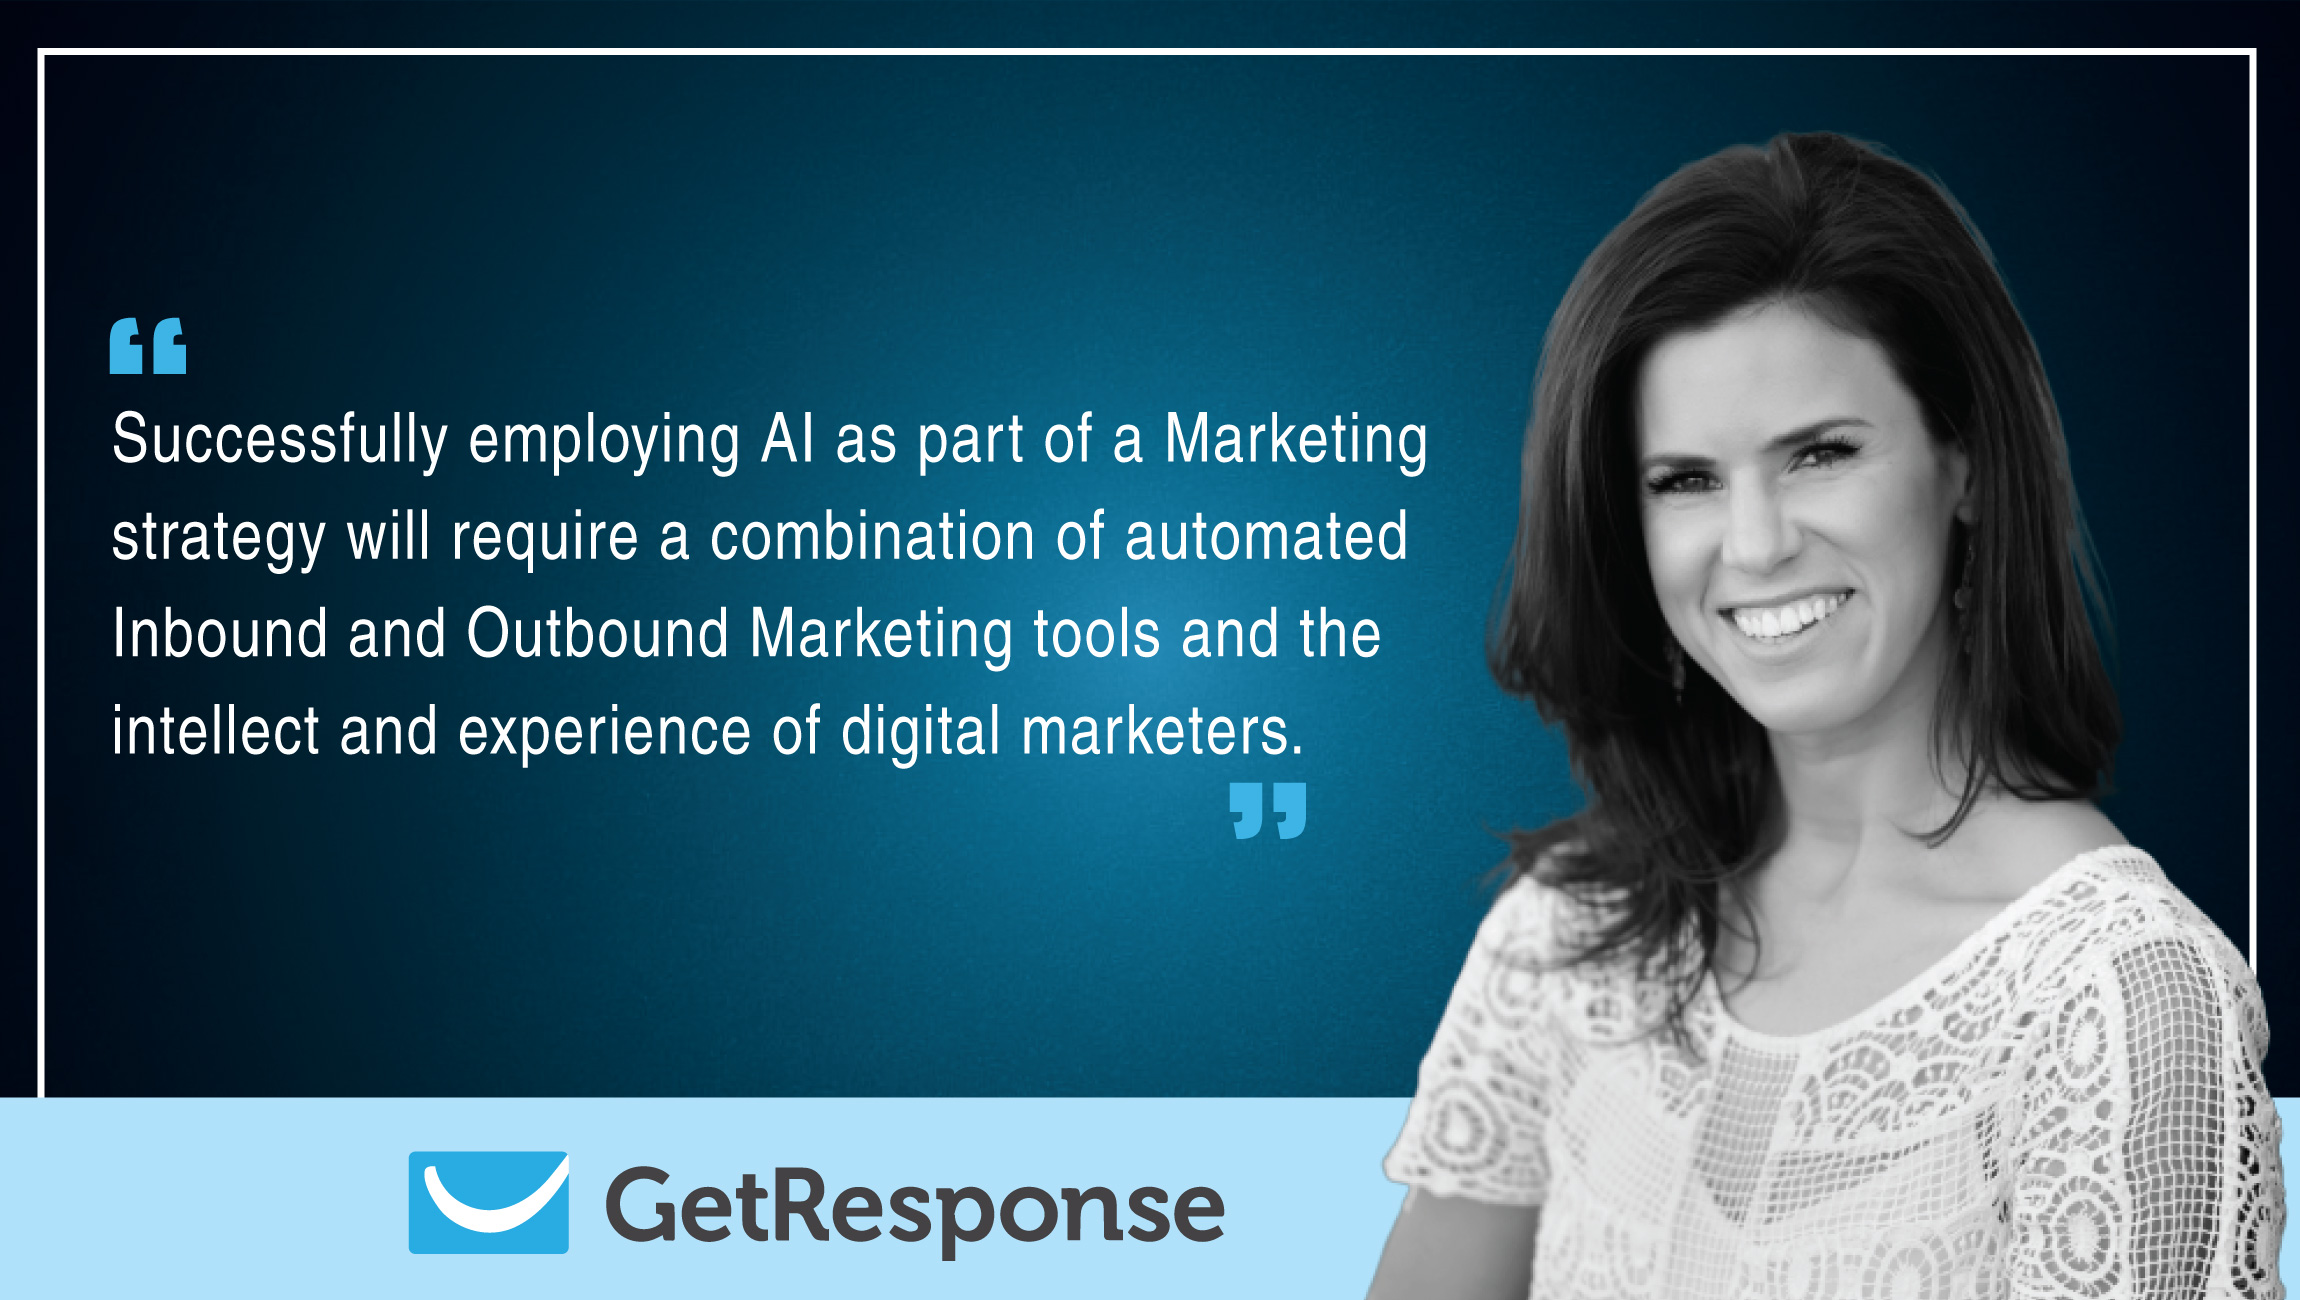 TechBytes with Courtenay Worcester, Director of Marketing at GetResponse